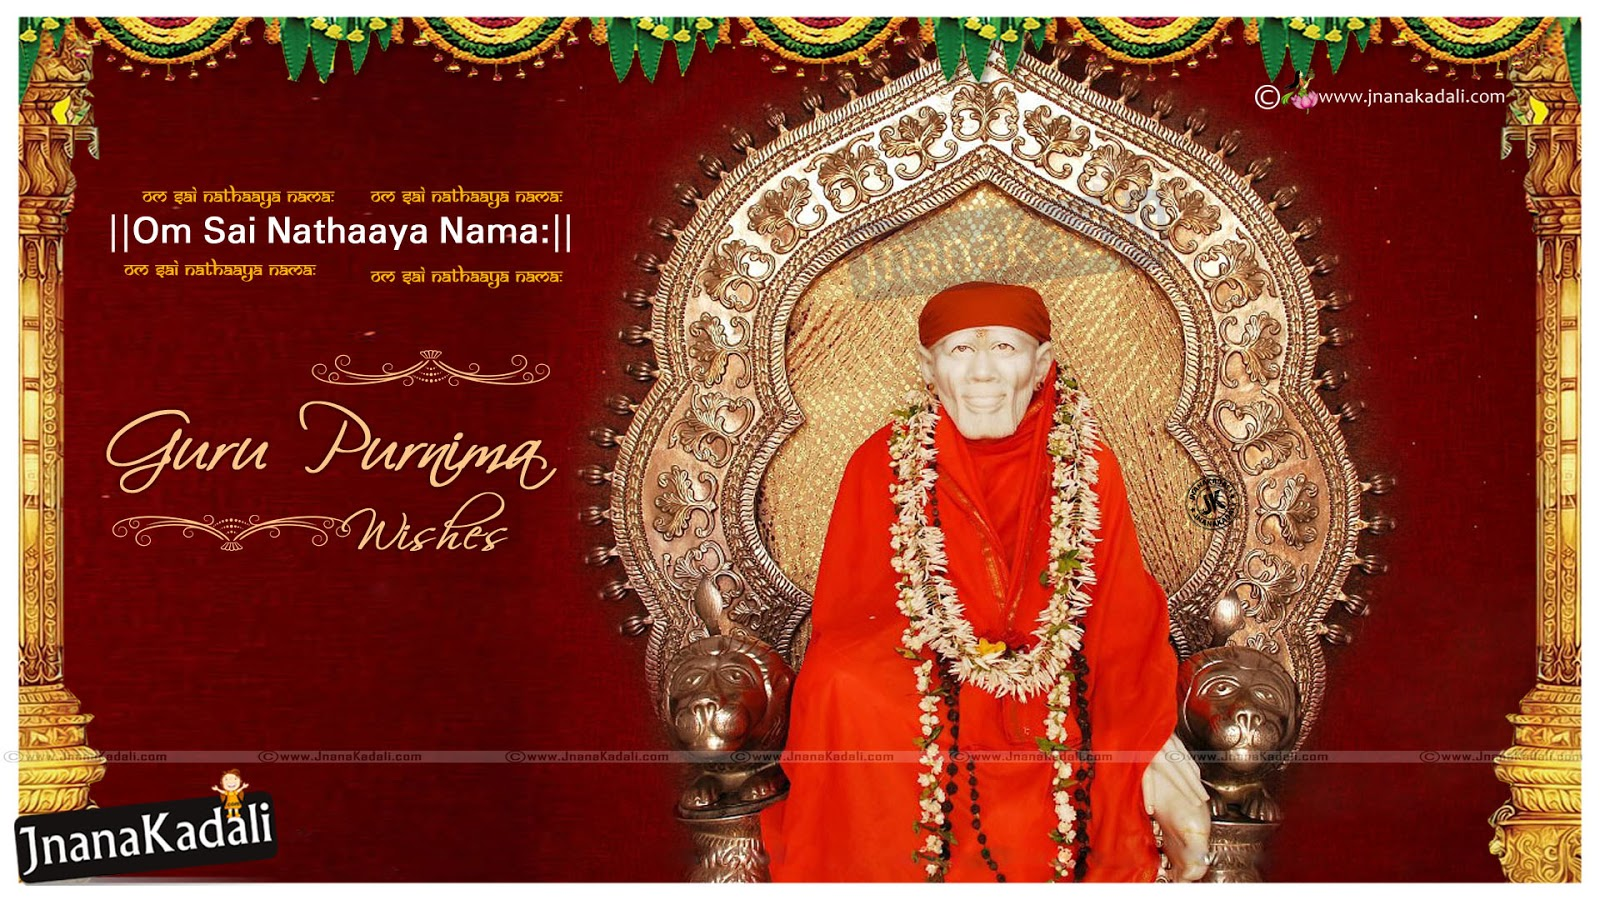 Sanskrit Of The Vedas Vs Modern Sanskrit: Guru Purnima English Quotations Greetings And Sai Baba HD